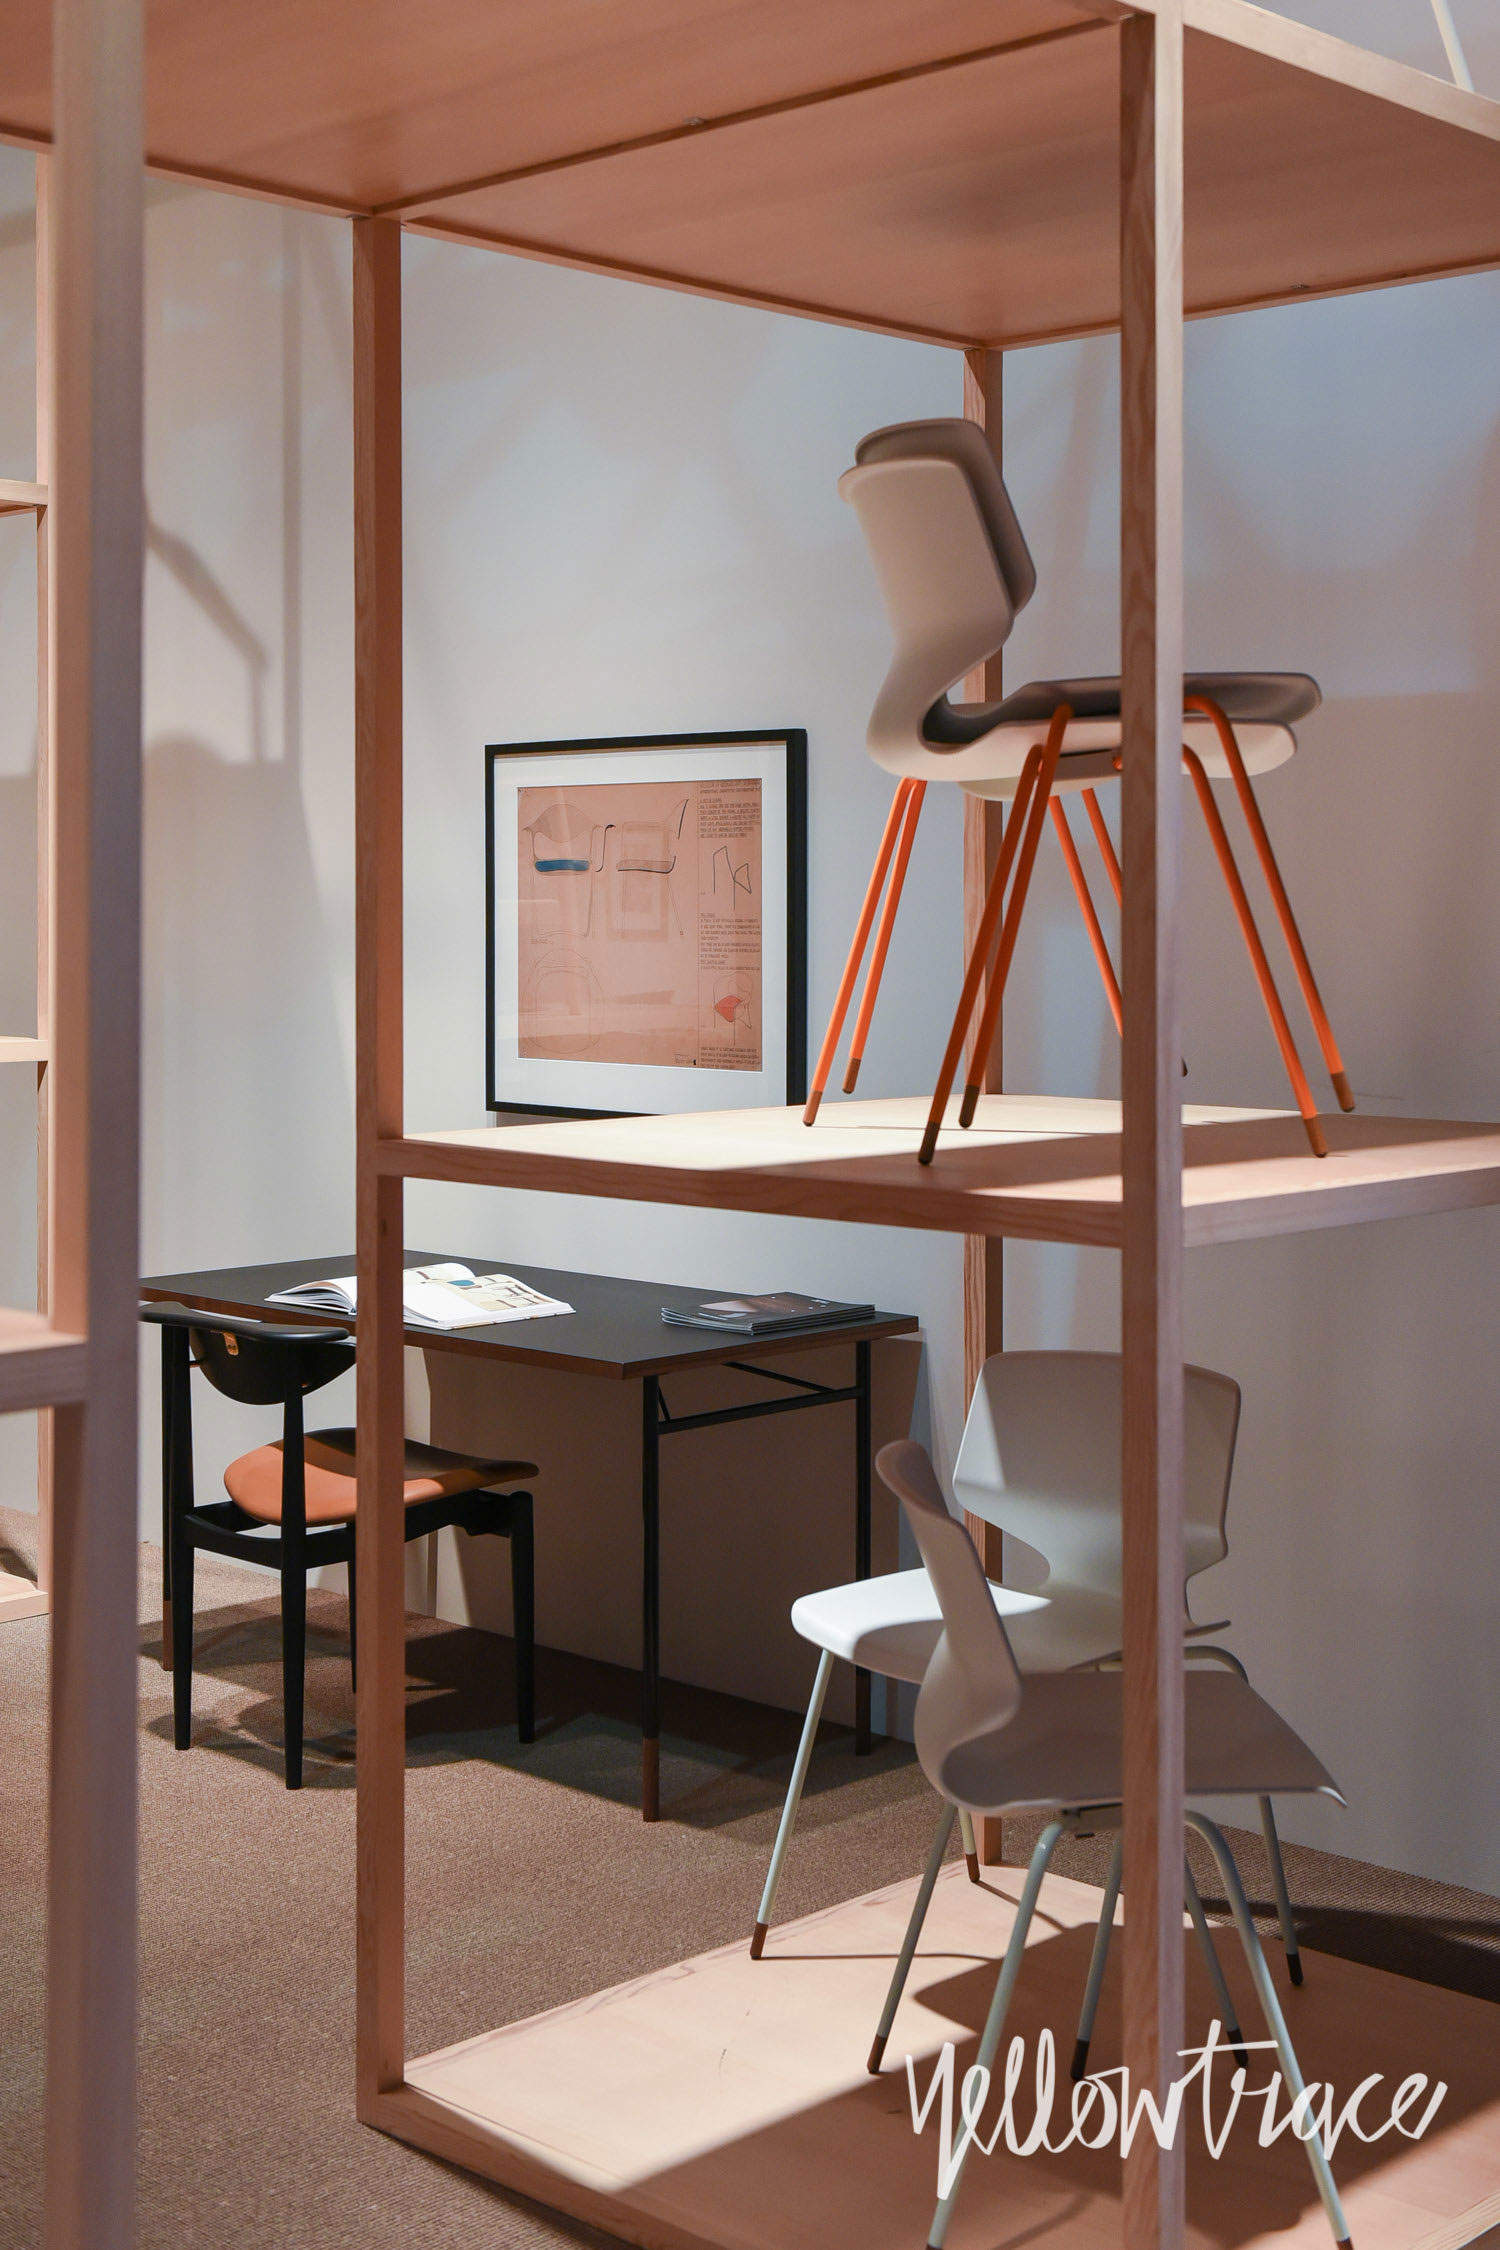 Finn Juhl Stand at Salone del Mobile. Photo by Nick Hughes | Yellowtrace